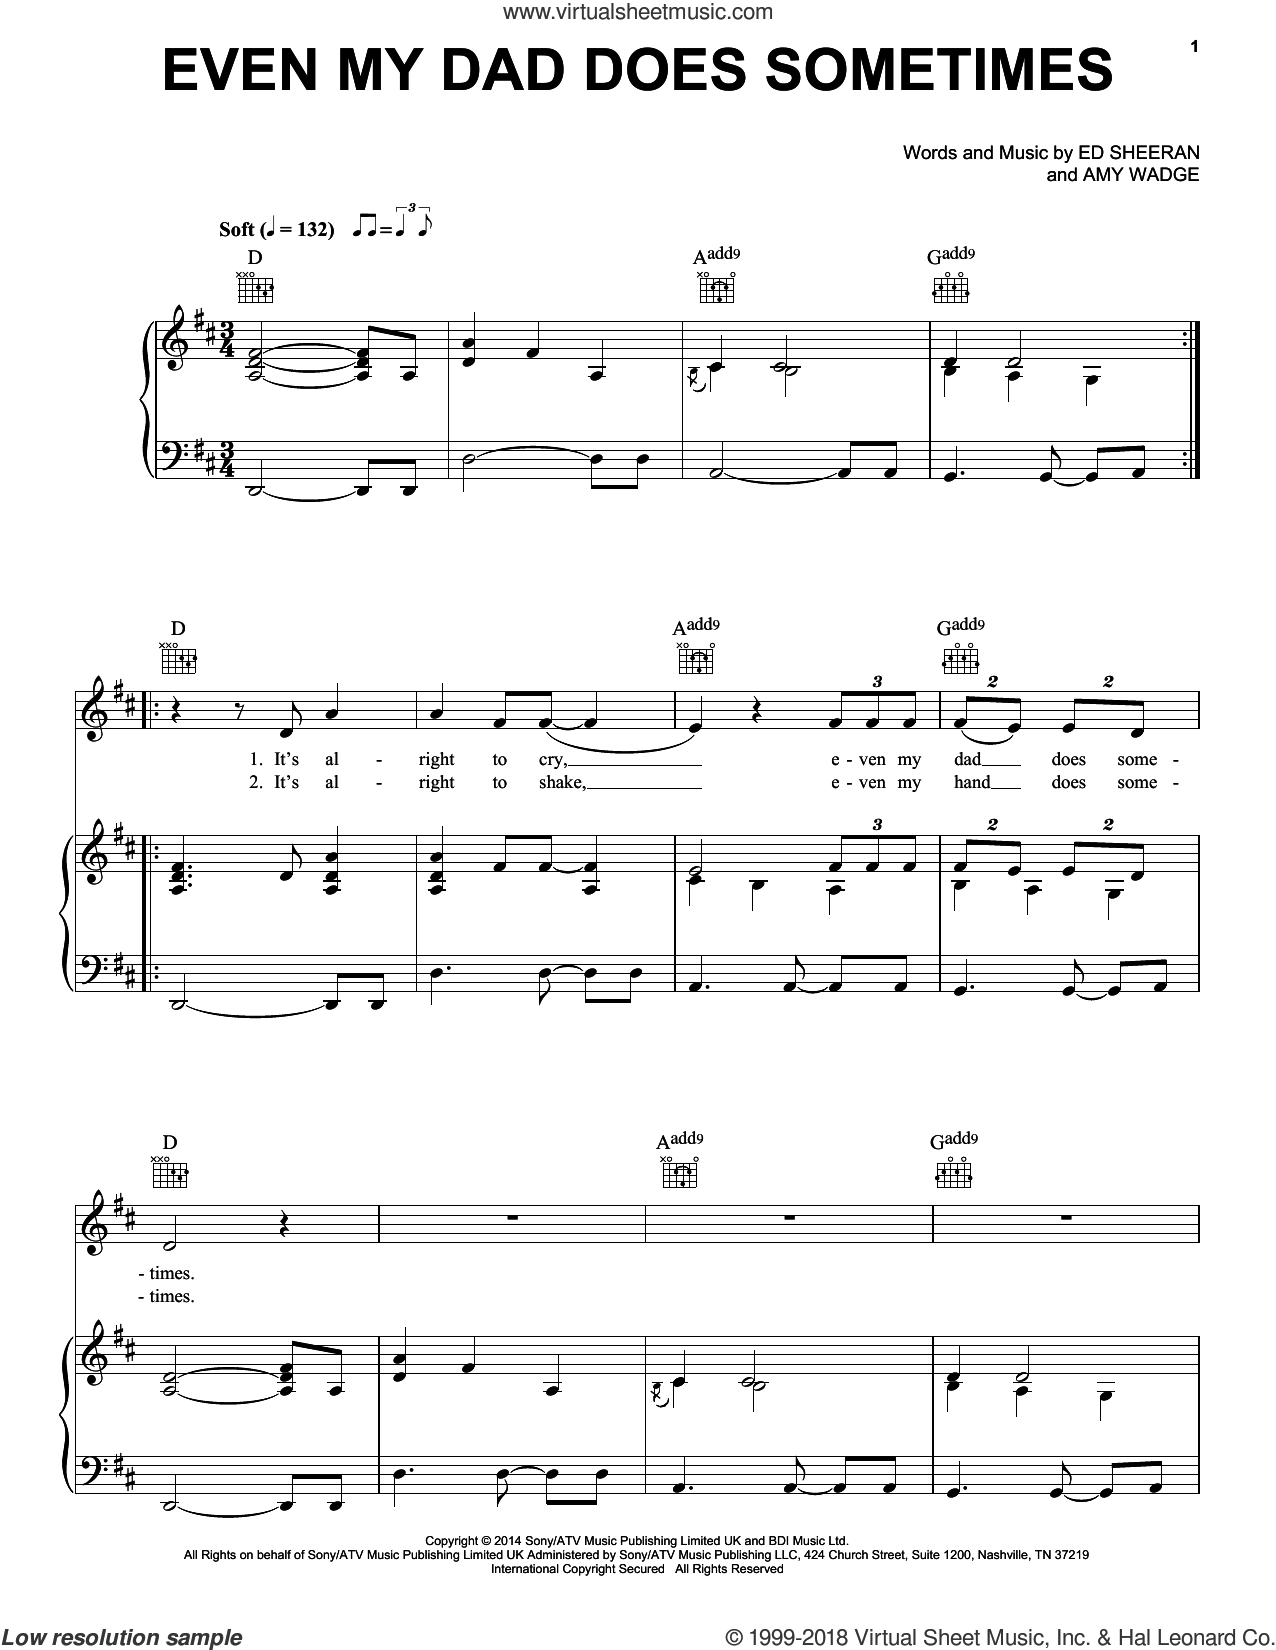 Even My Dad Does Sometimes sheet music for voice, piano or guitar by Ed Sheeran. Score Image Preview.